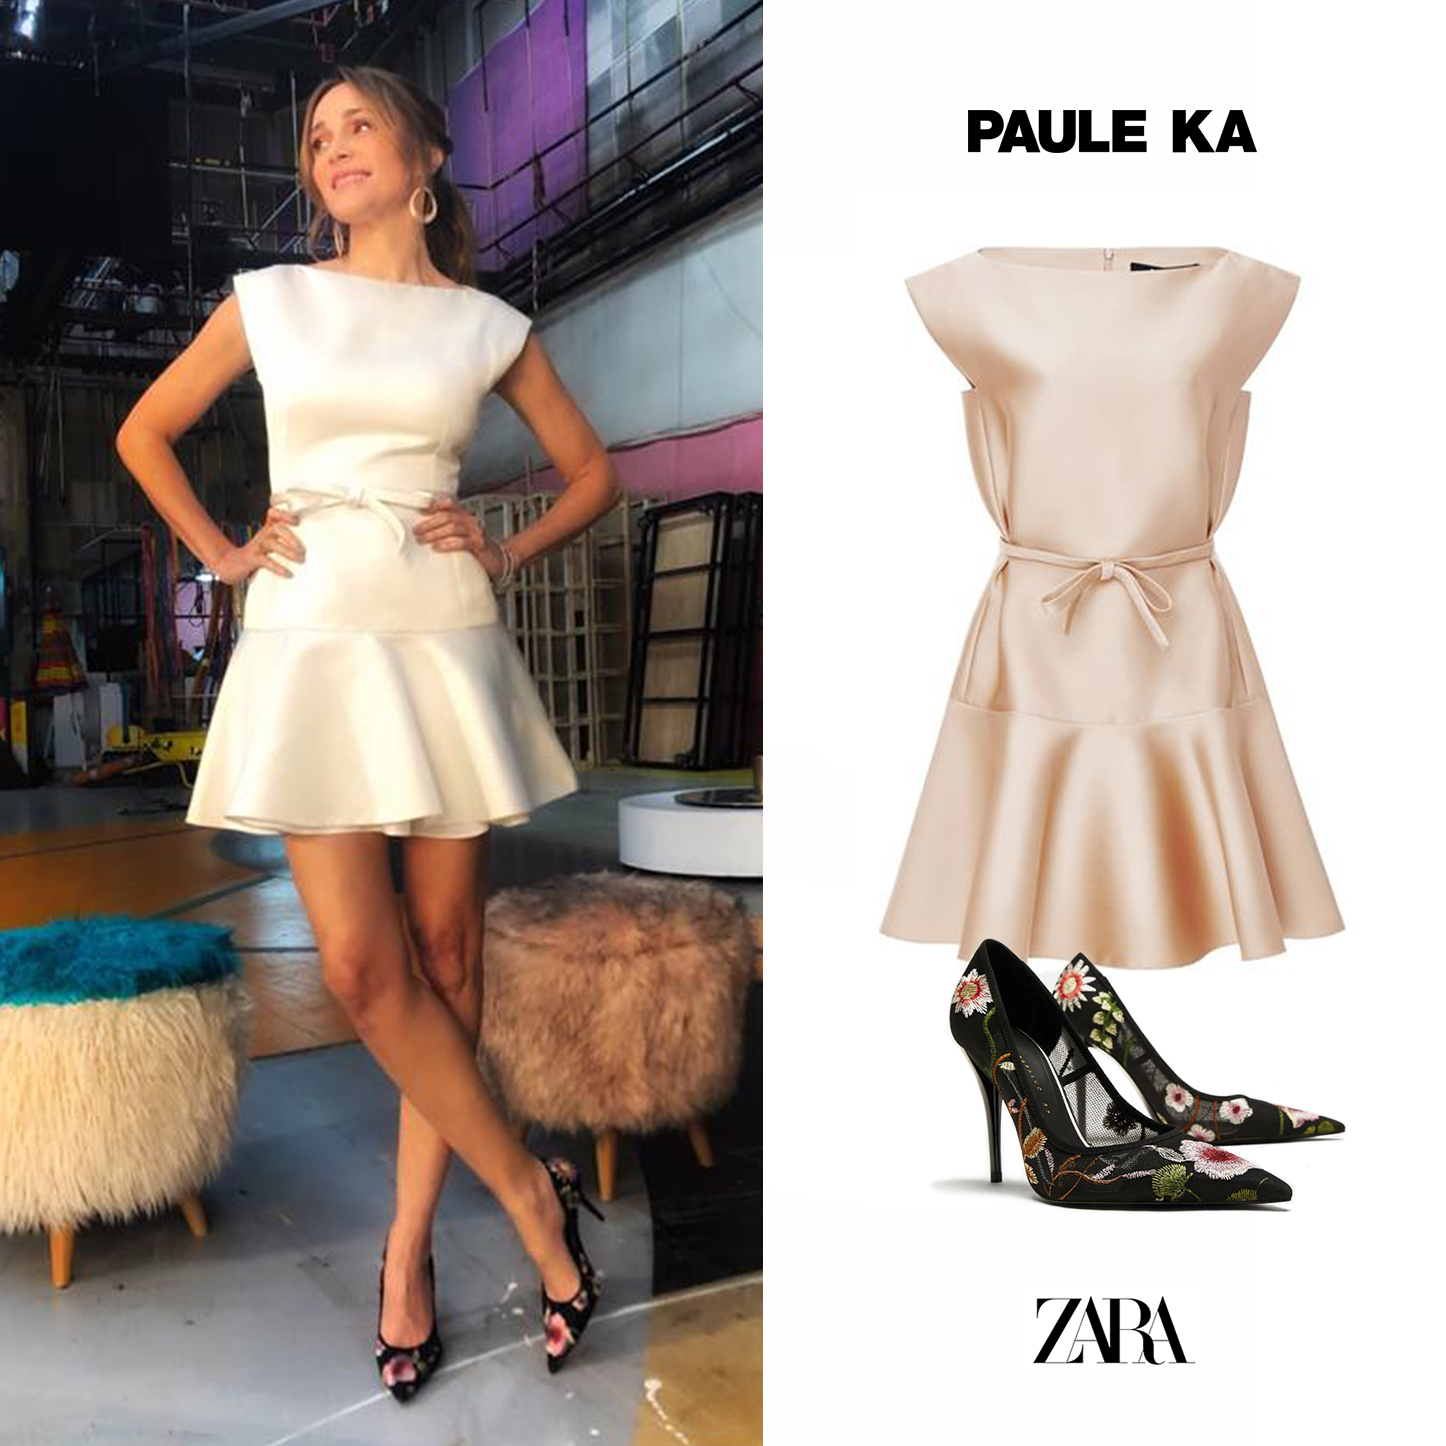 Vero_Veronica_Lozano_Corta_por_Vestido_Flared)Duchess_Paule_Ka_White_Blanco_Zapatos_FLores_Bordadas_Embroidered_Floral_Pumps_Zara.jpg